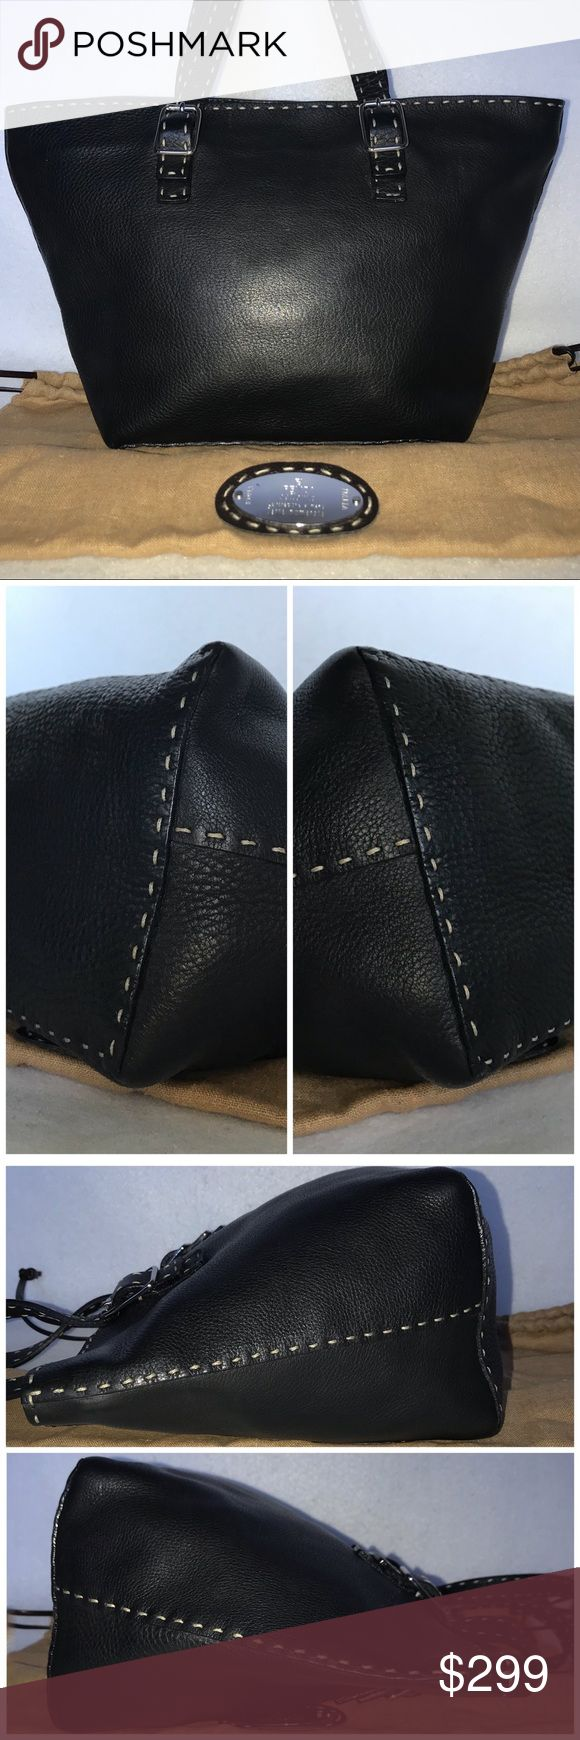 """EXCELLENT Fendi Selleria Leather Tote & Dust Bag 👉 Priced to sell.  TRADE VALUE: $500 👈  🎁 EXCELLENT CONDITION 🎁  🎁 NOTE:  It's RARE to find a Fendi Selleria w/ a Selleria dust bag! VERY VALUABLE!!  Leather is freshly polished. No scuffing, rips or odors.  Height: 9.5"""" Length: 15"""" Depth: 5.5"""" Strap Drop: 7"""" (adjustable)  🎁  Includes FENDI Selleria Dust Bag (VERY RARE) 🎁 Fendi Bags Totes"""